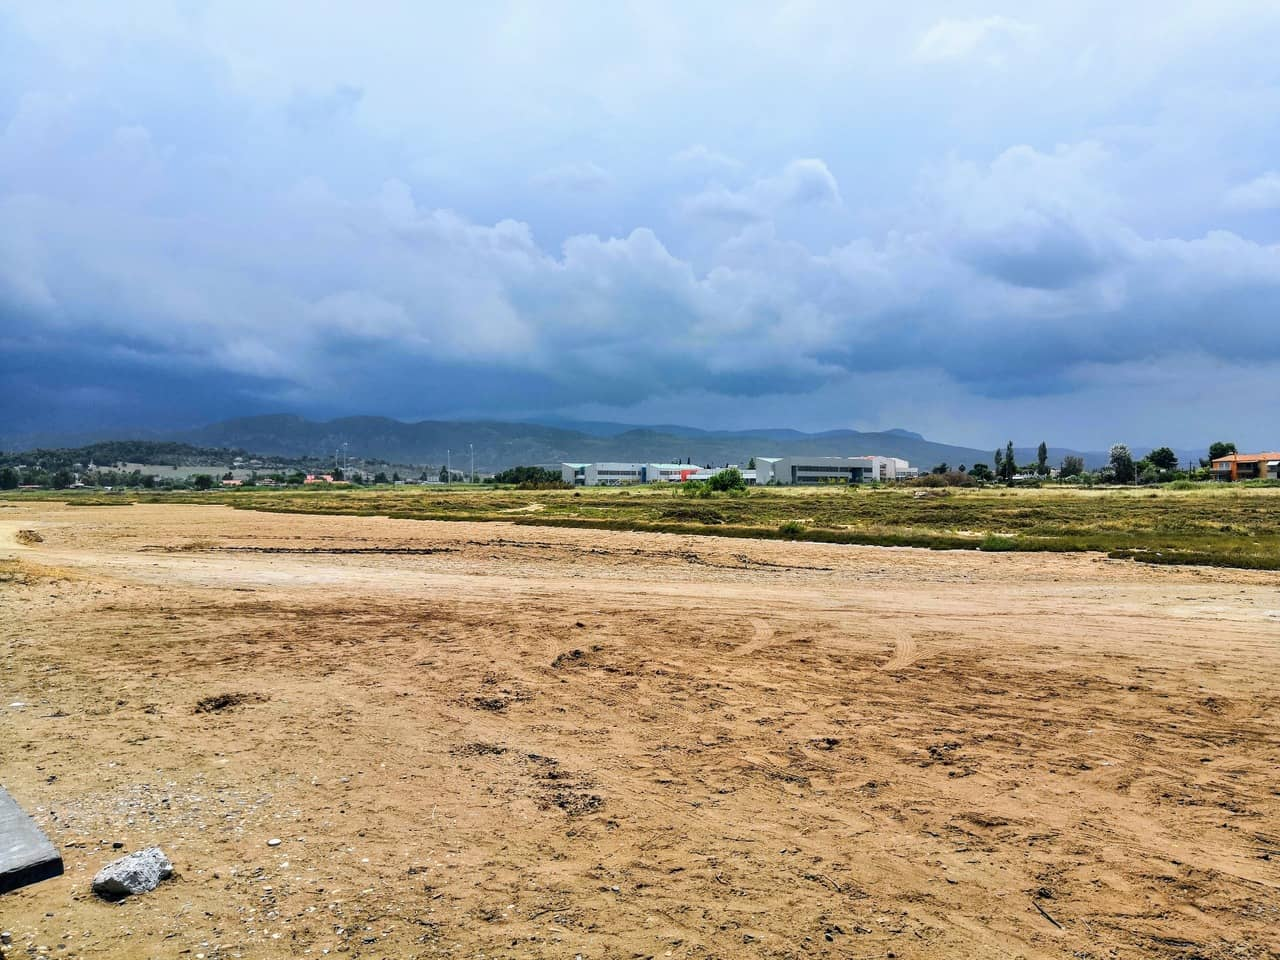 Cloudy view of buildings from a dirt road